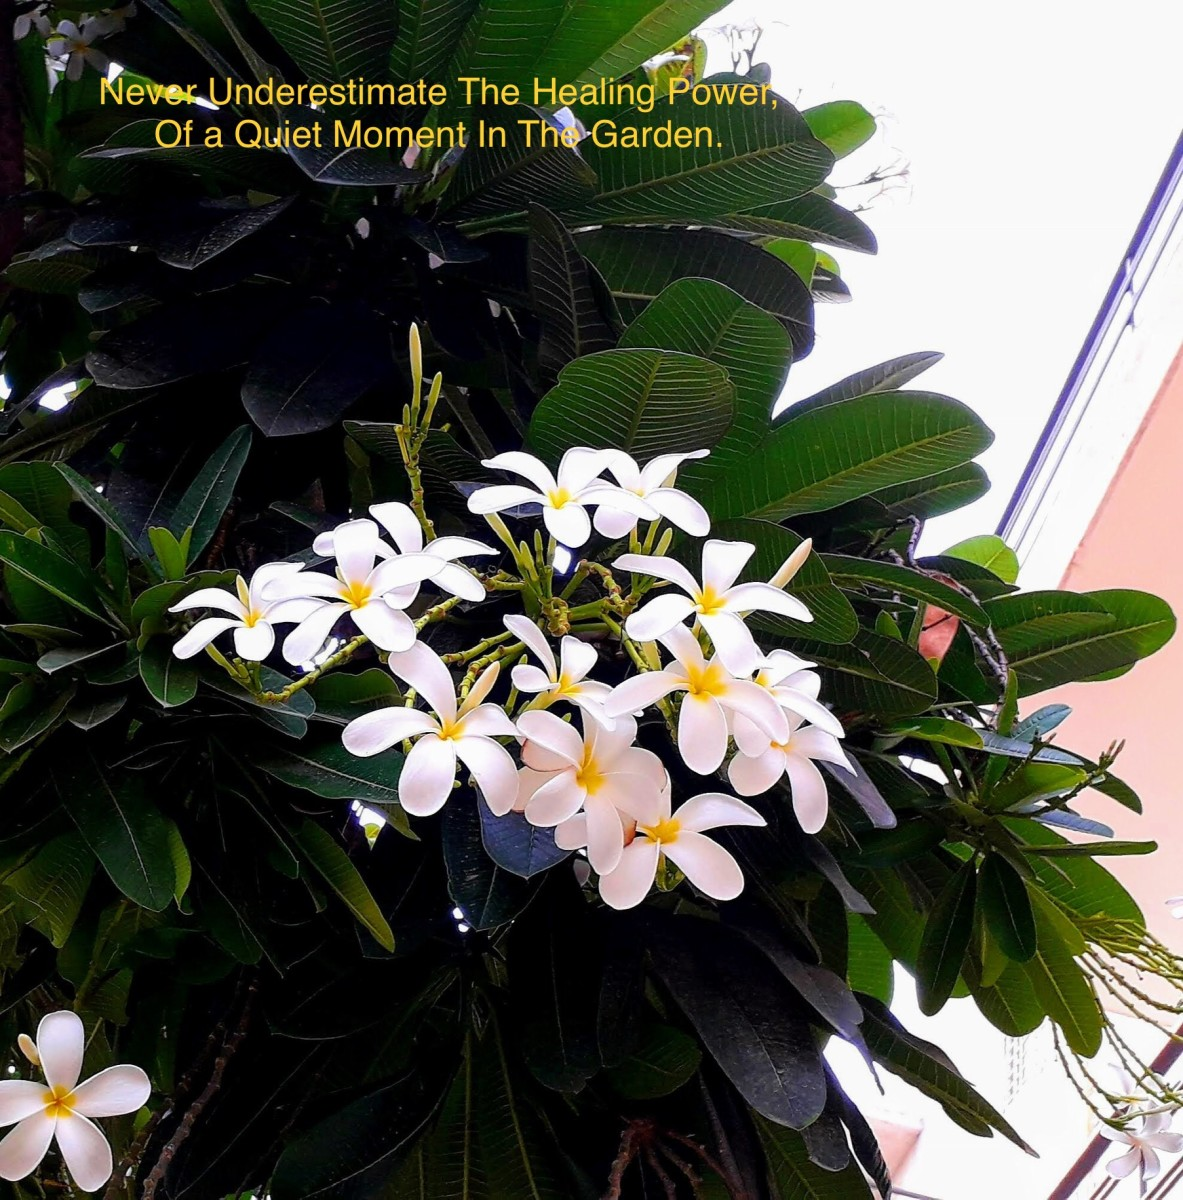 The fragrance of the champa flower is divine.